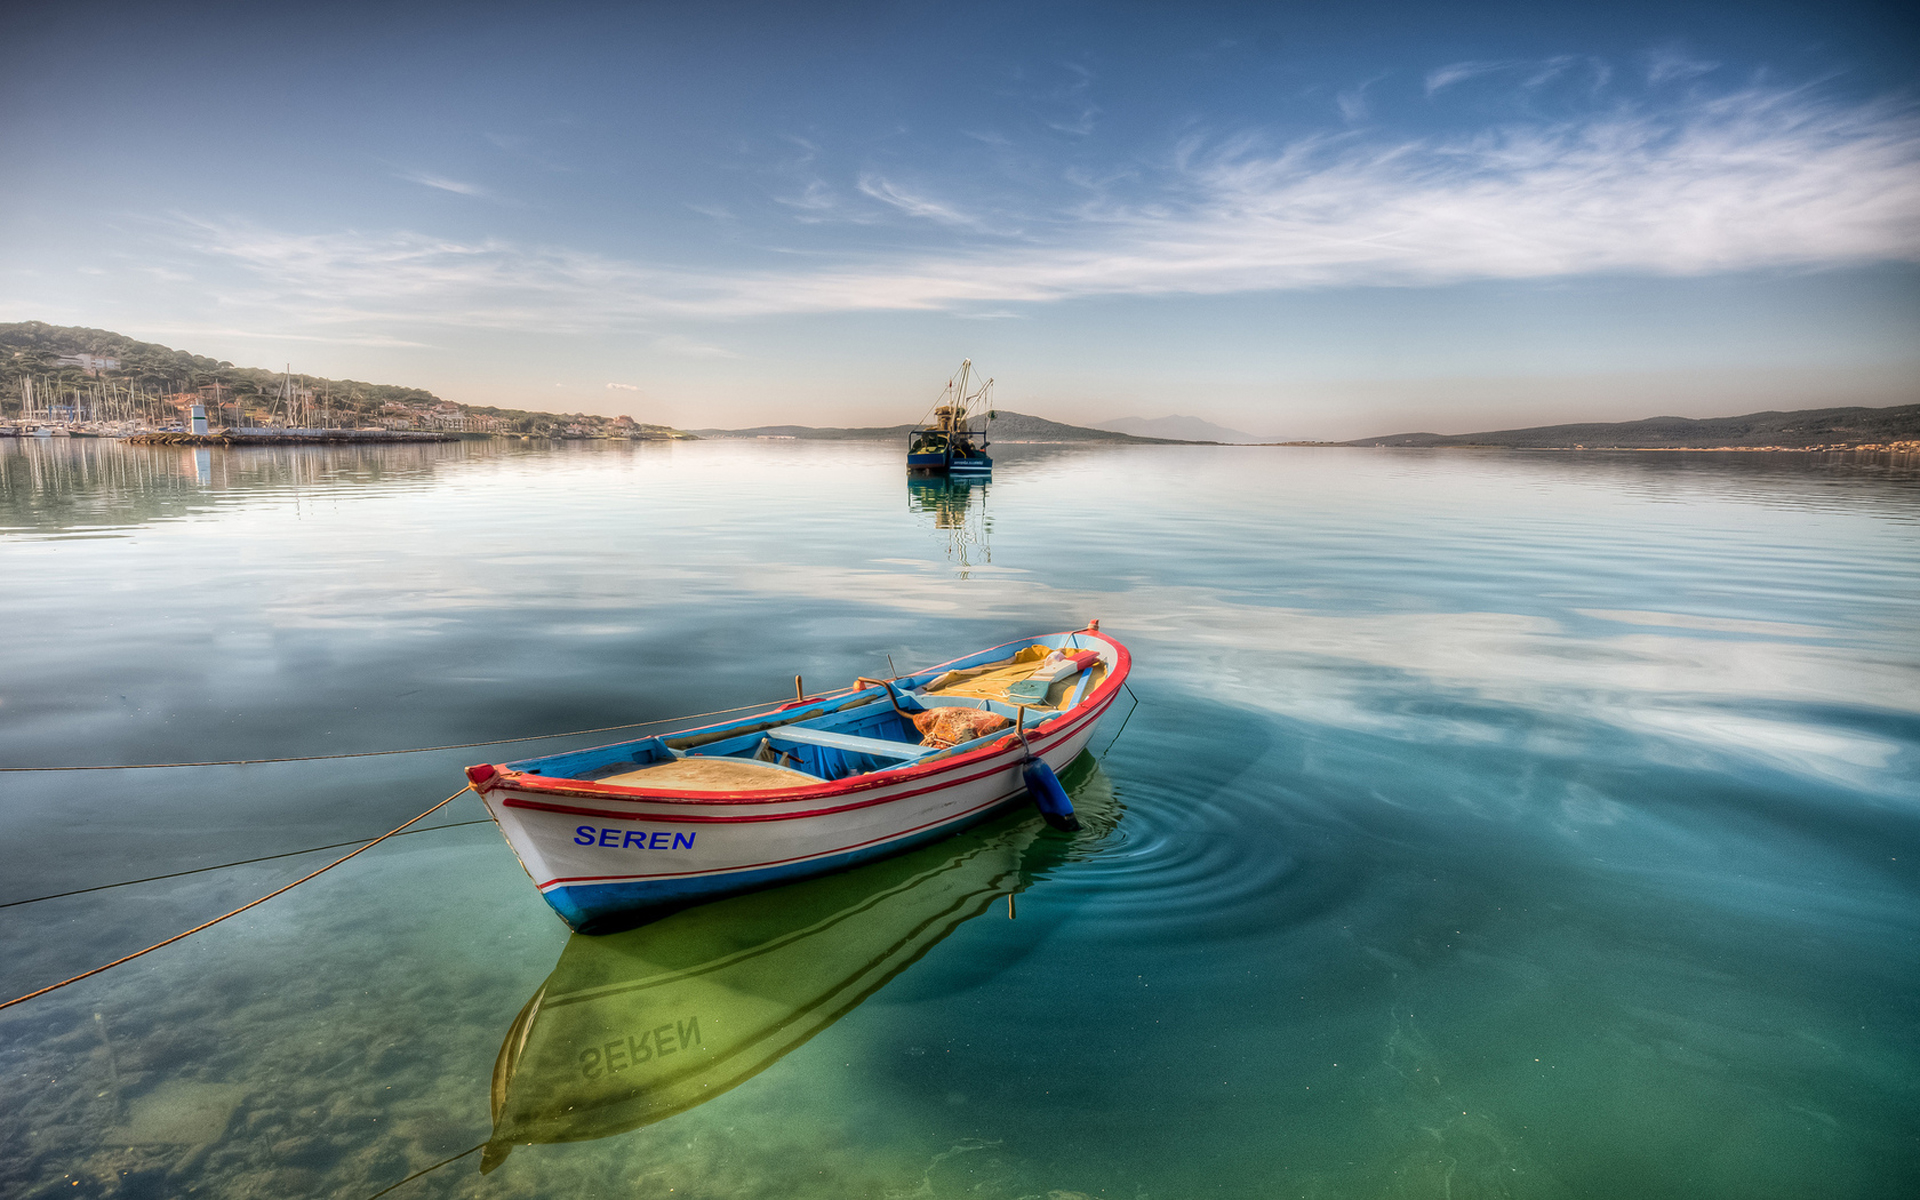 Boat named Seren / 1920 x 1200 / Water / Photography | MIRIADNA.COM